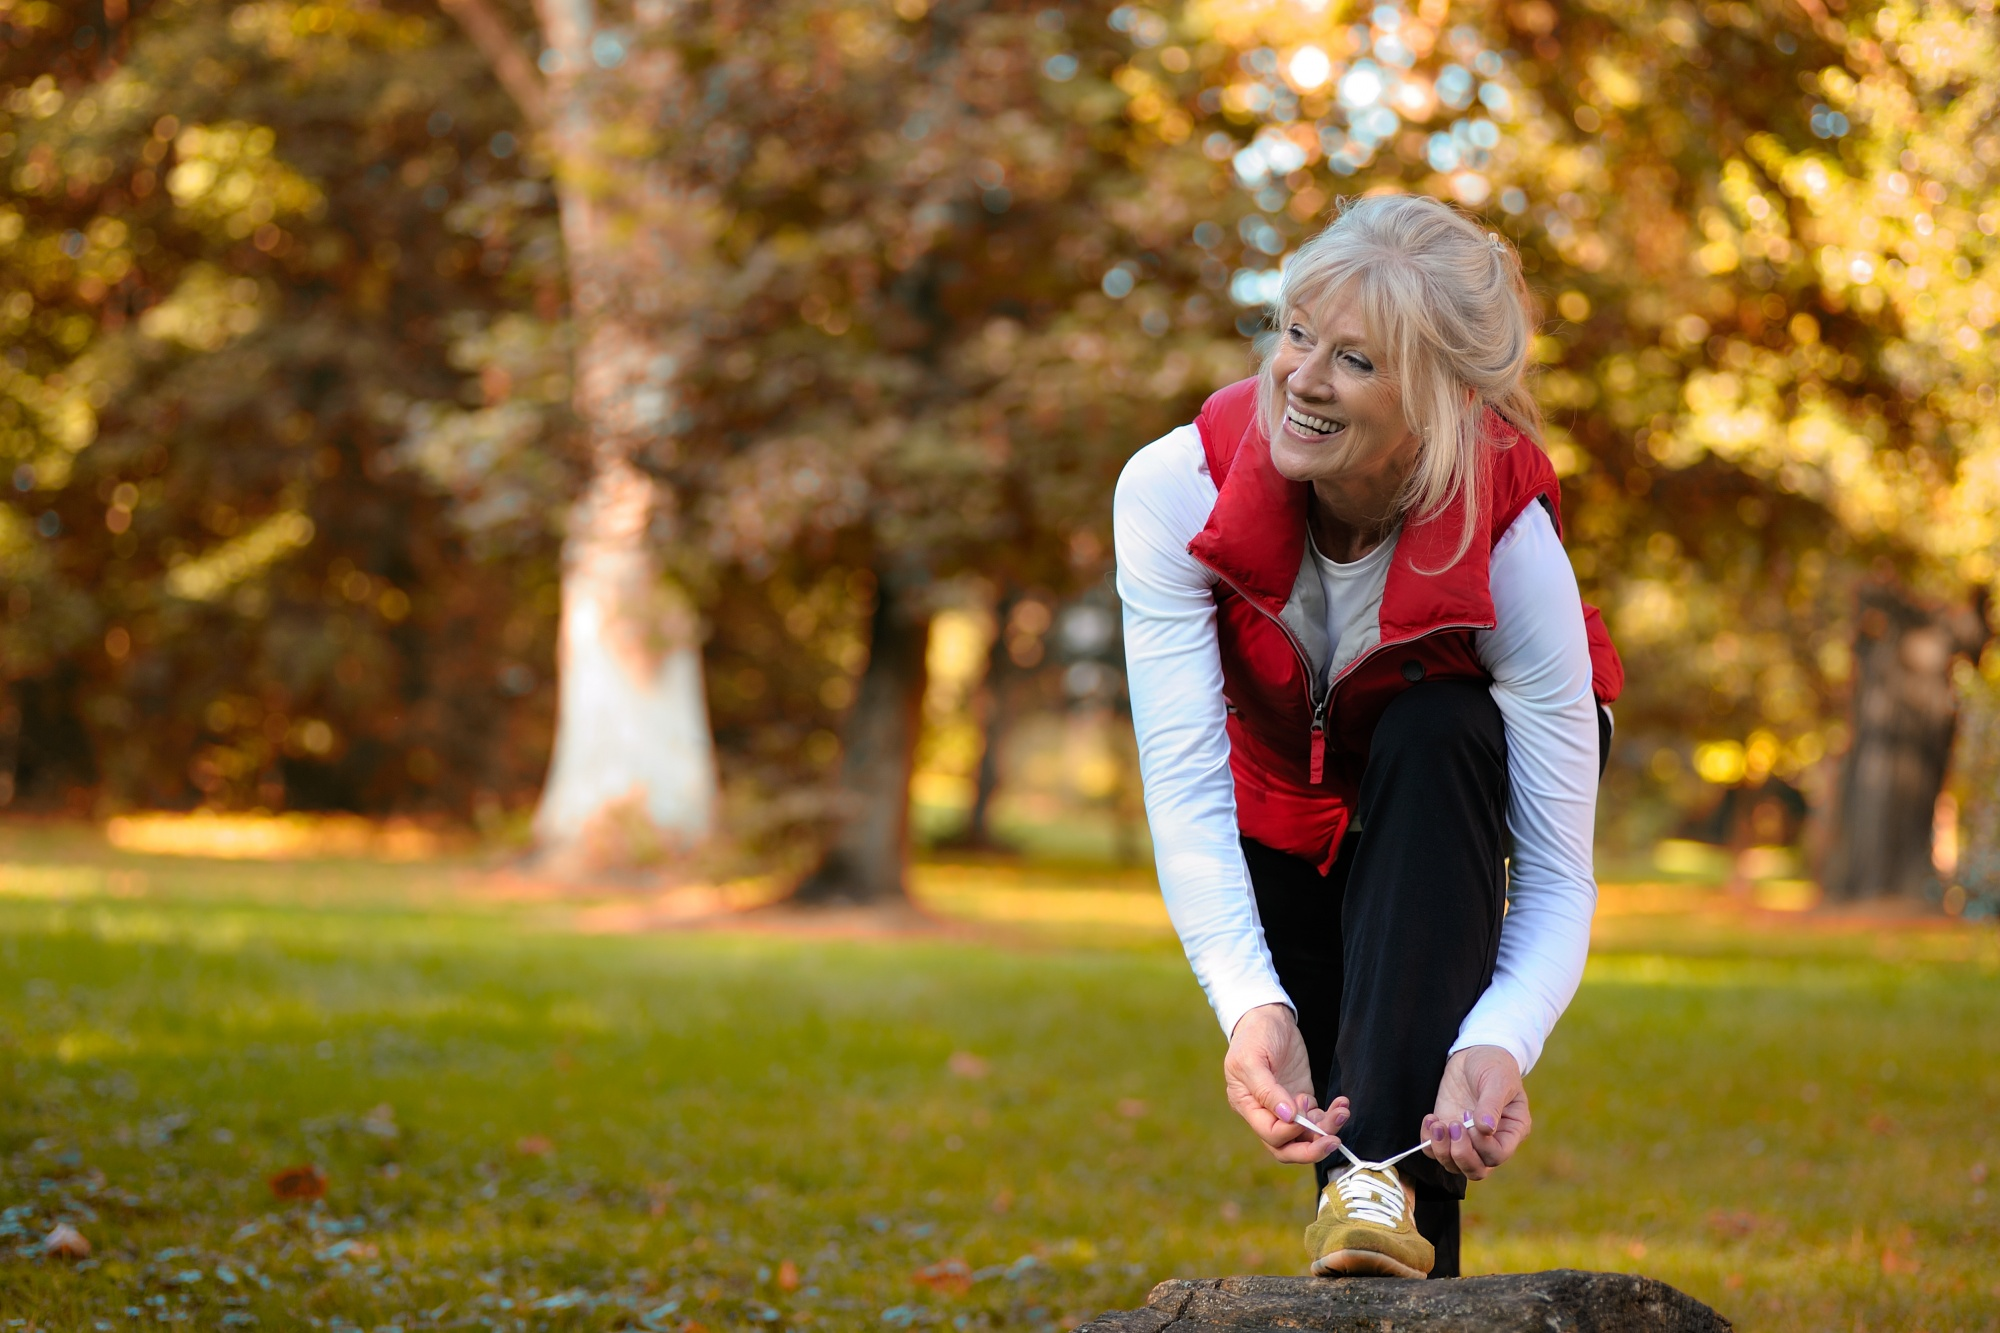 New Year's Resolutions, Blond woman getting ready for a run in black pants, white shirt, and red vest